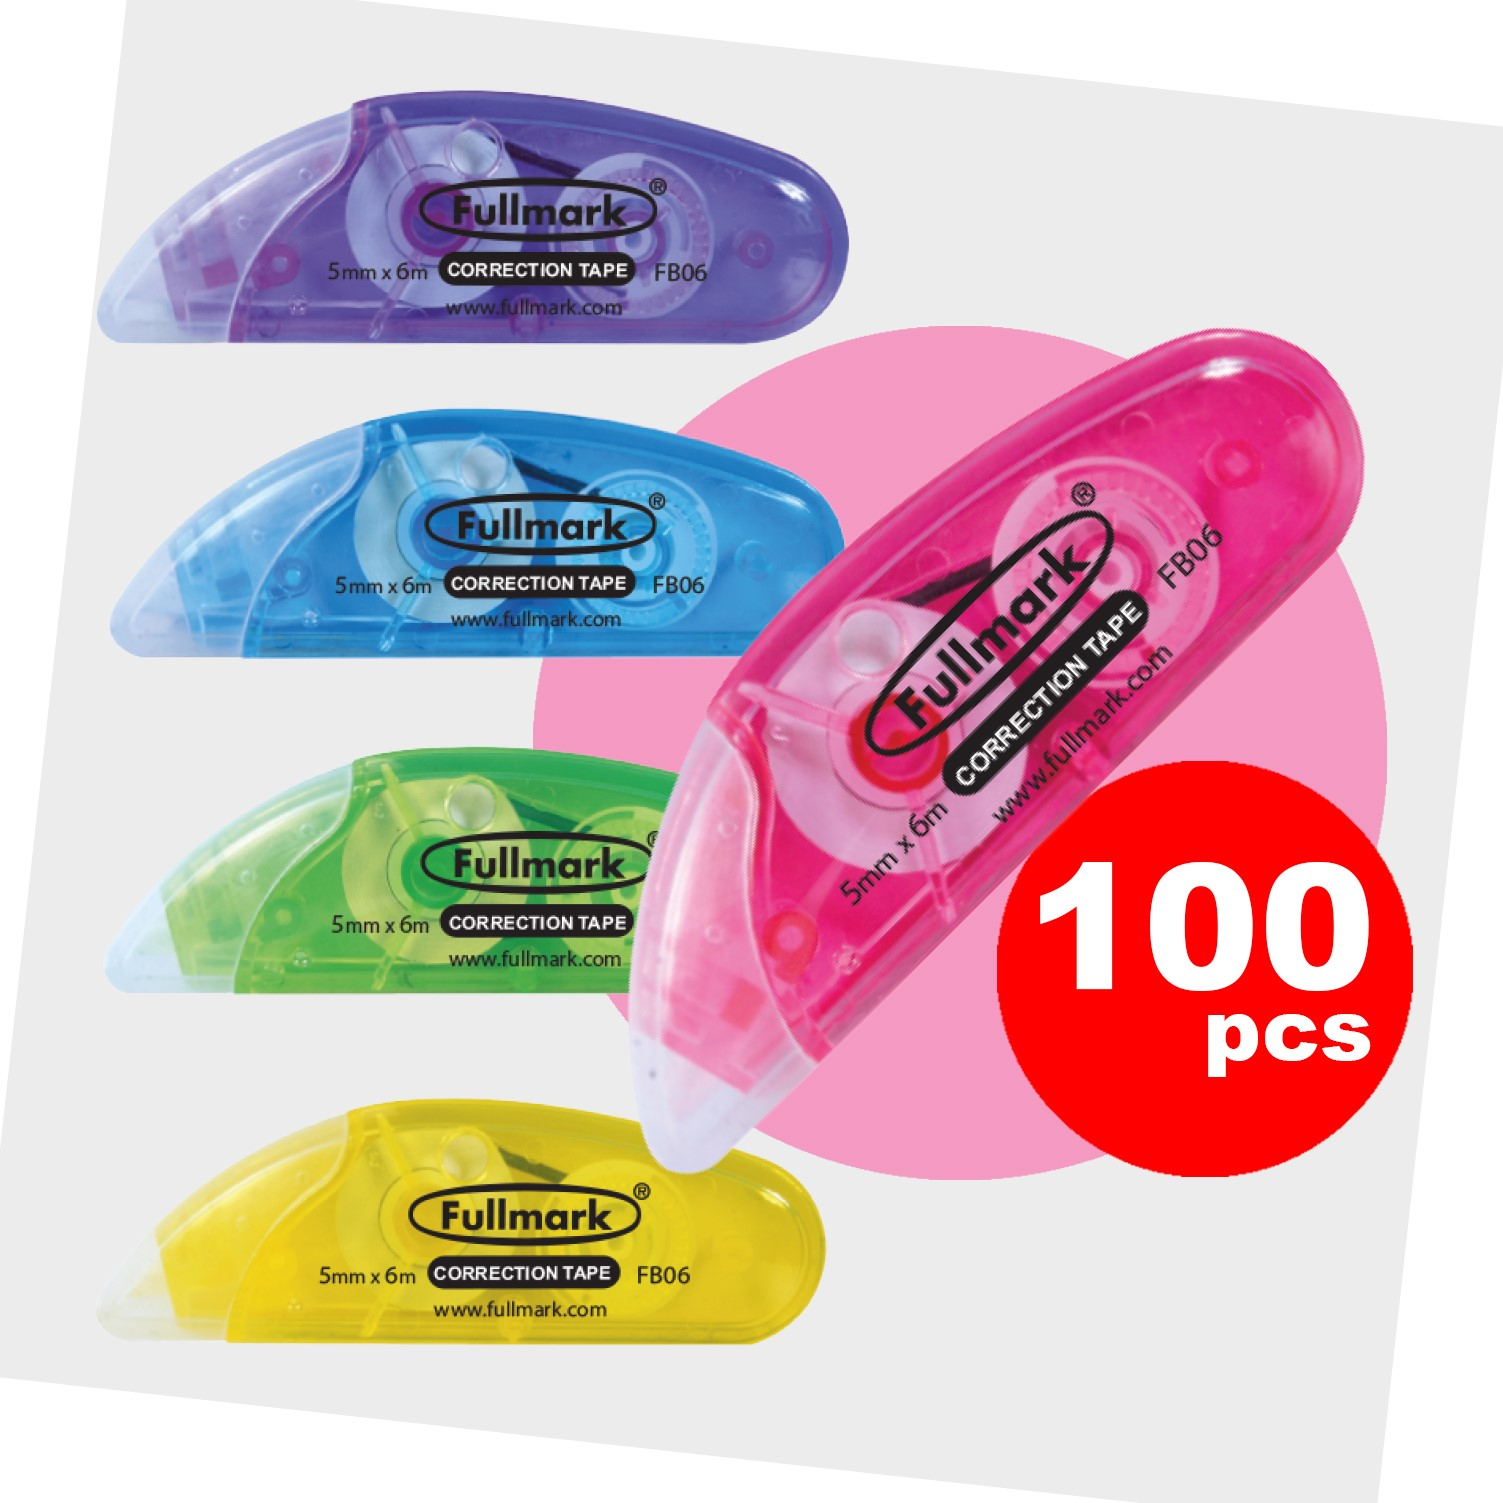 Fullmark Model B Correction Tape Gift Box 100pack - 5mm X 6m each